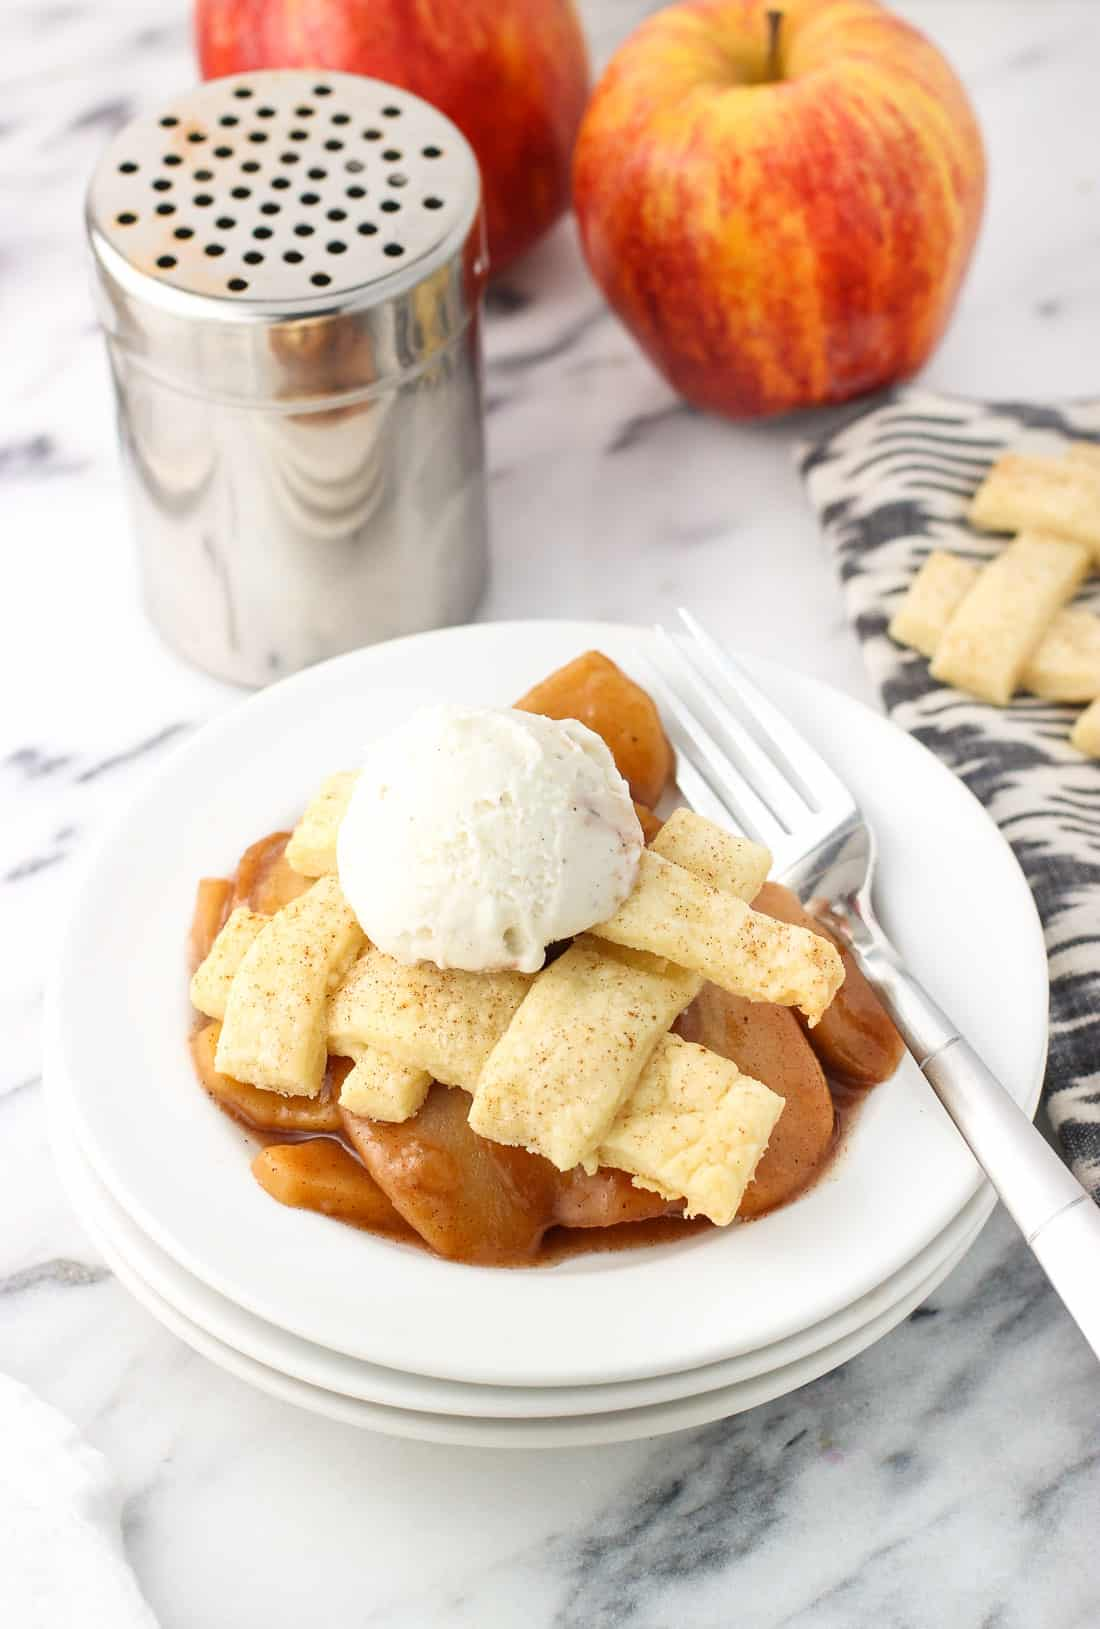 This incredibly easy slow cooker apple pie has all the flavors of classic apple pie with a ton more hands-off time. Apple slices cook in the crock pot until spiced and tender, and are topped with quick baked cinnamon sugar pie crust lattice squares for a simple version of apple pie that tastes like its inspiration!